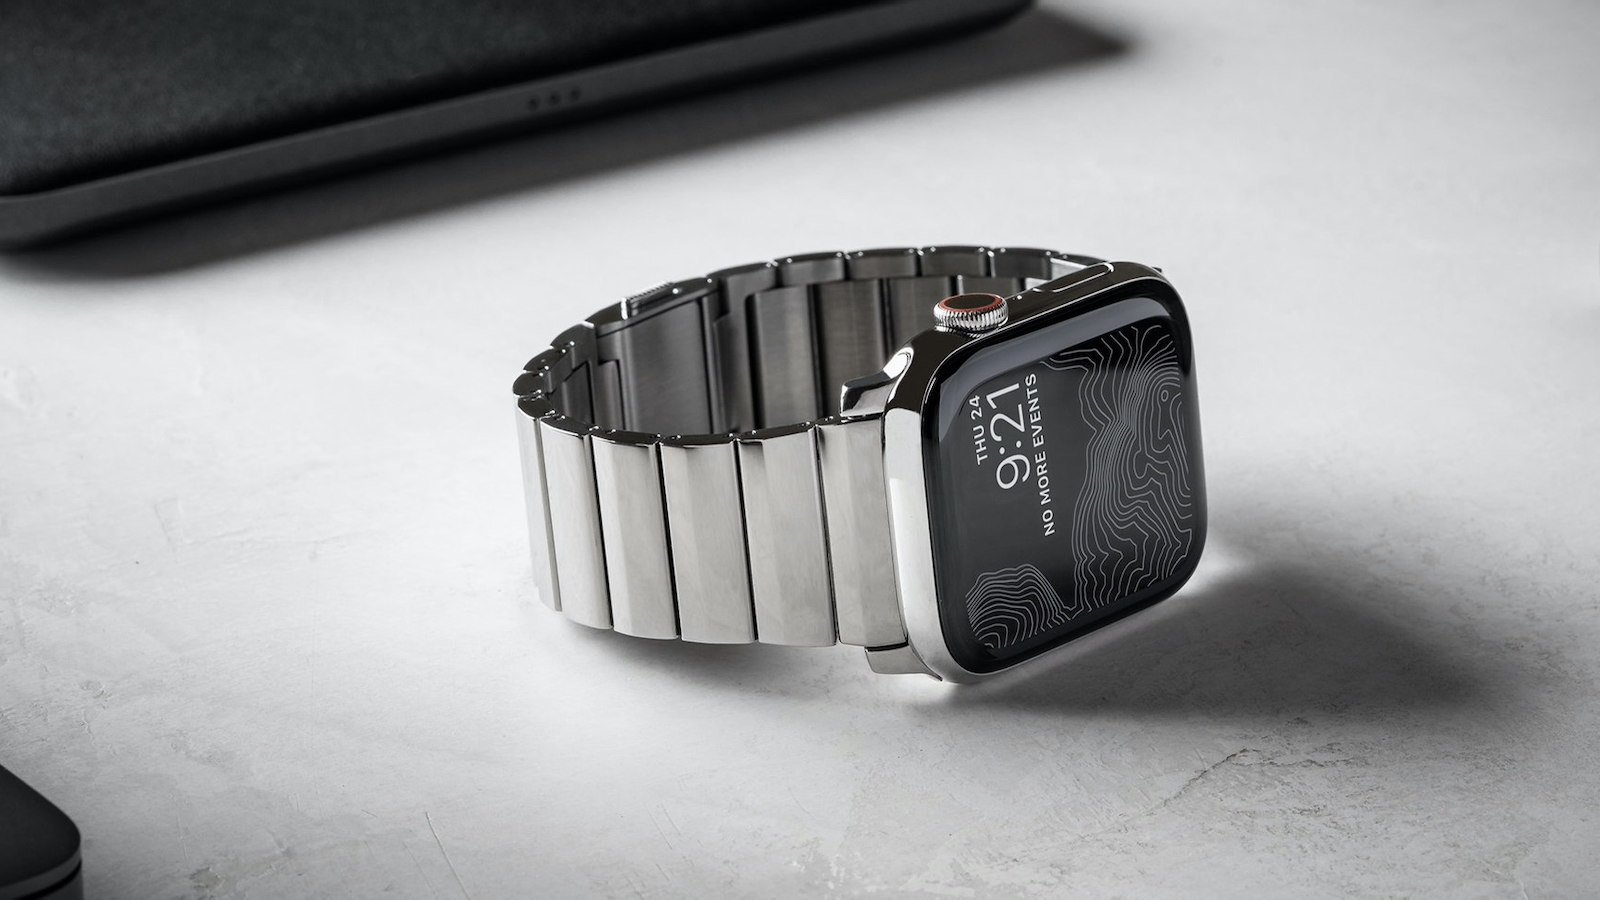 Nomad Steel Band for Apple Watch has a stainless steel and a diamond-like carbon coating